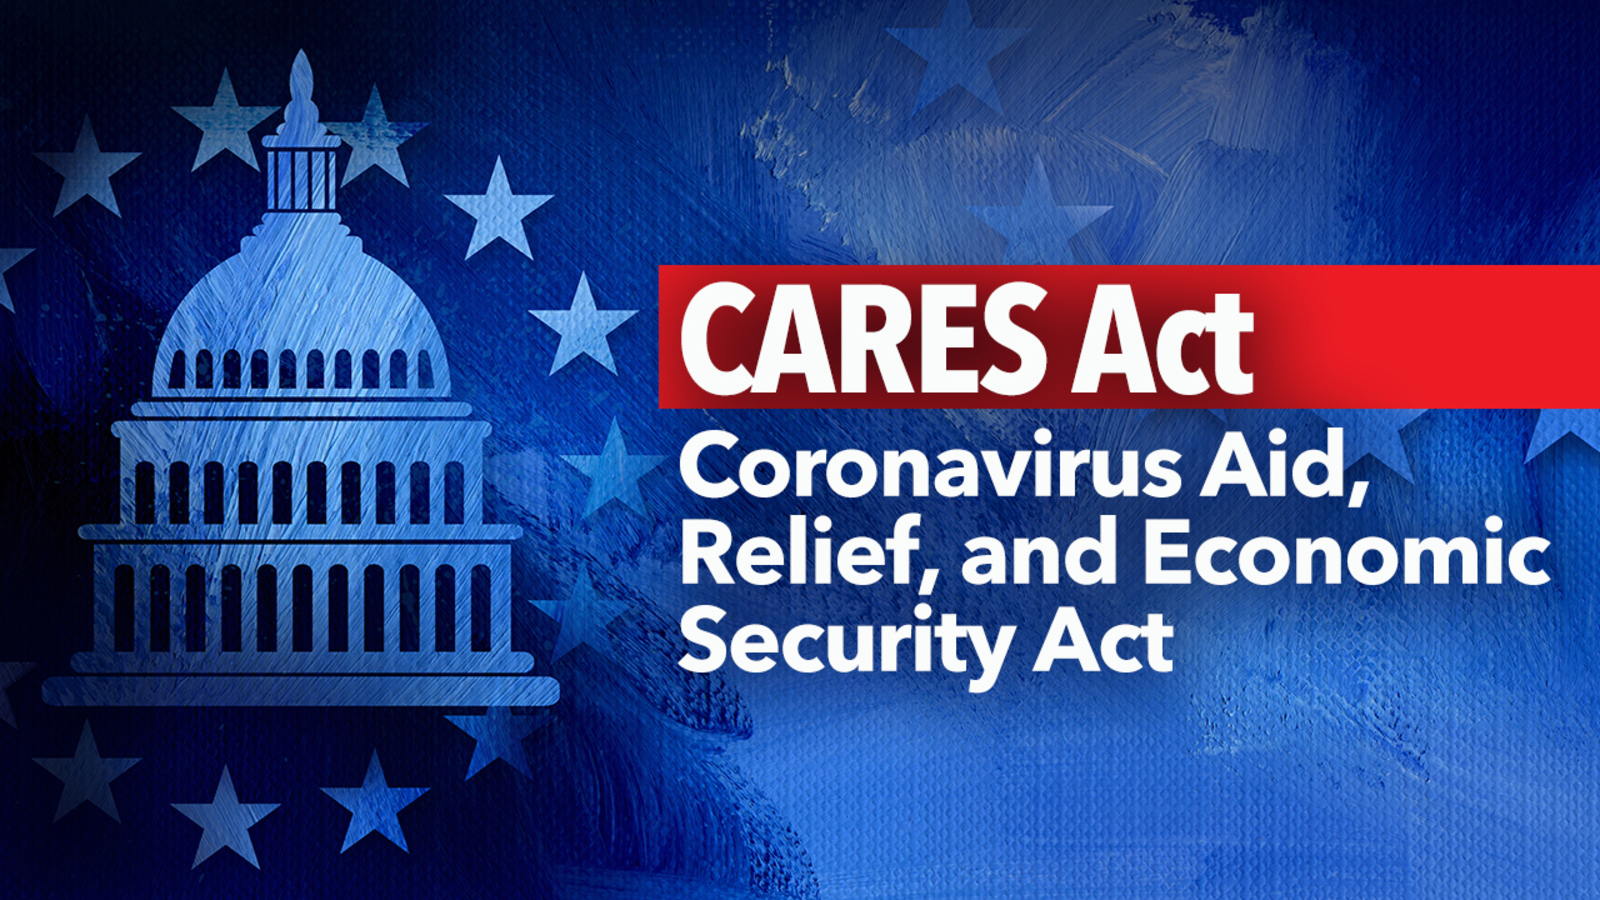 CARES Act Tax Incentives